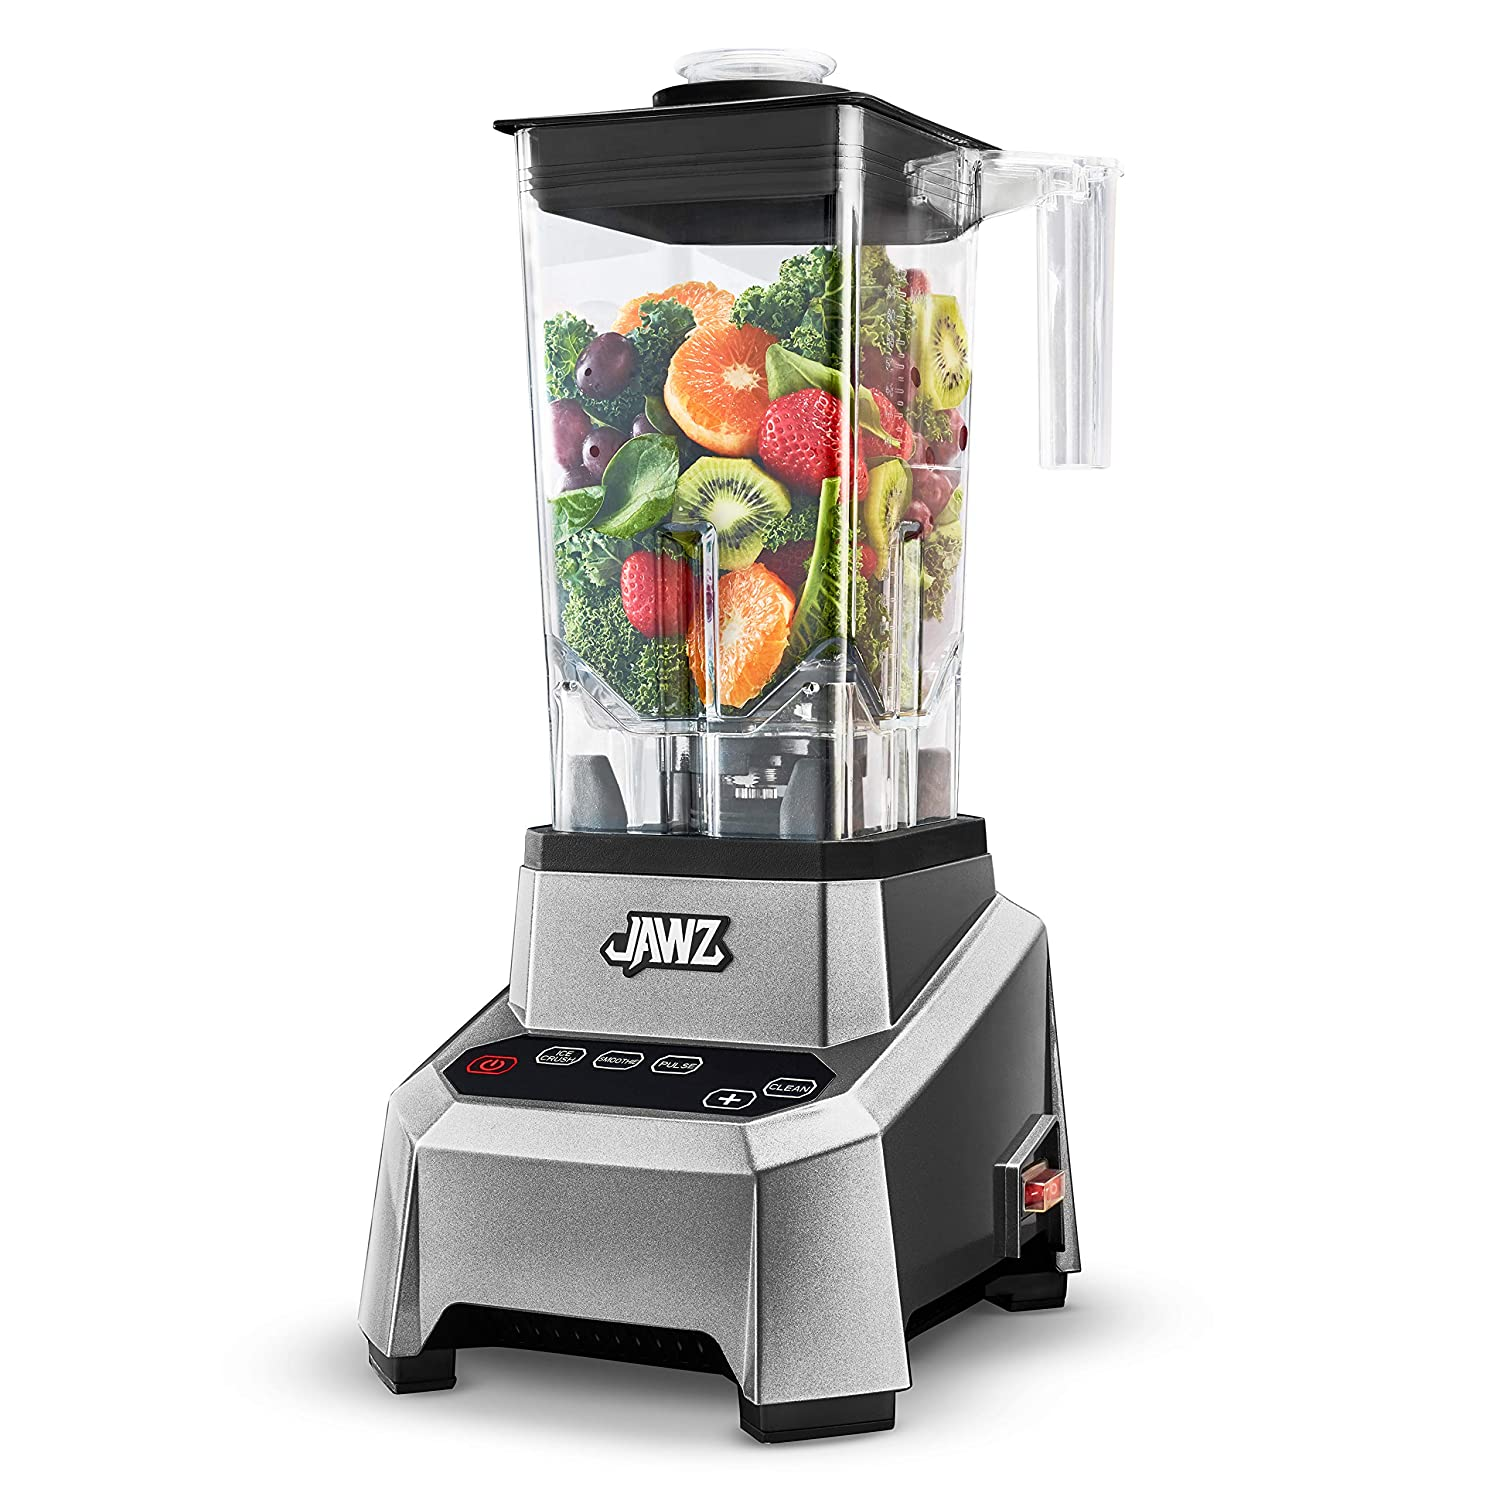 JAWZ High Performance – Precision Touch Variable Speed – Professional Grade Countertop Blender Food Processor, 64 Ounce, Silver